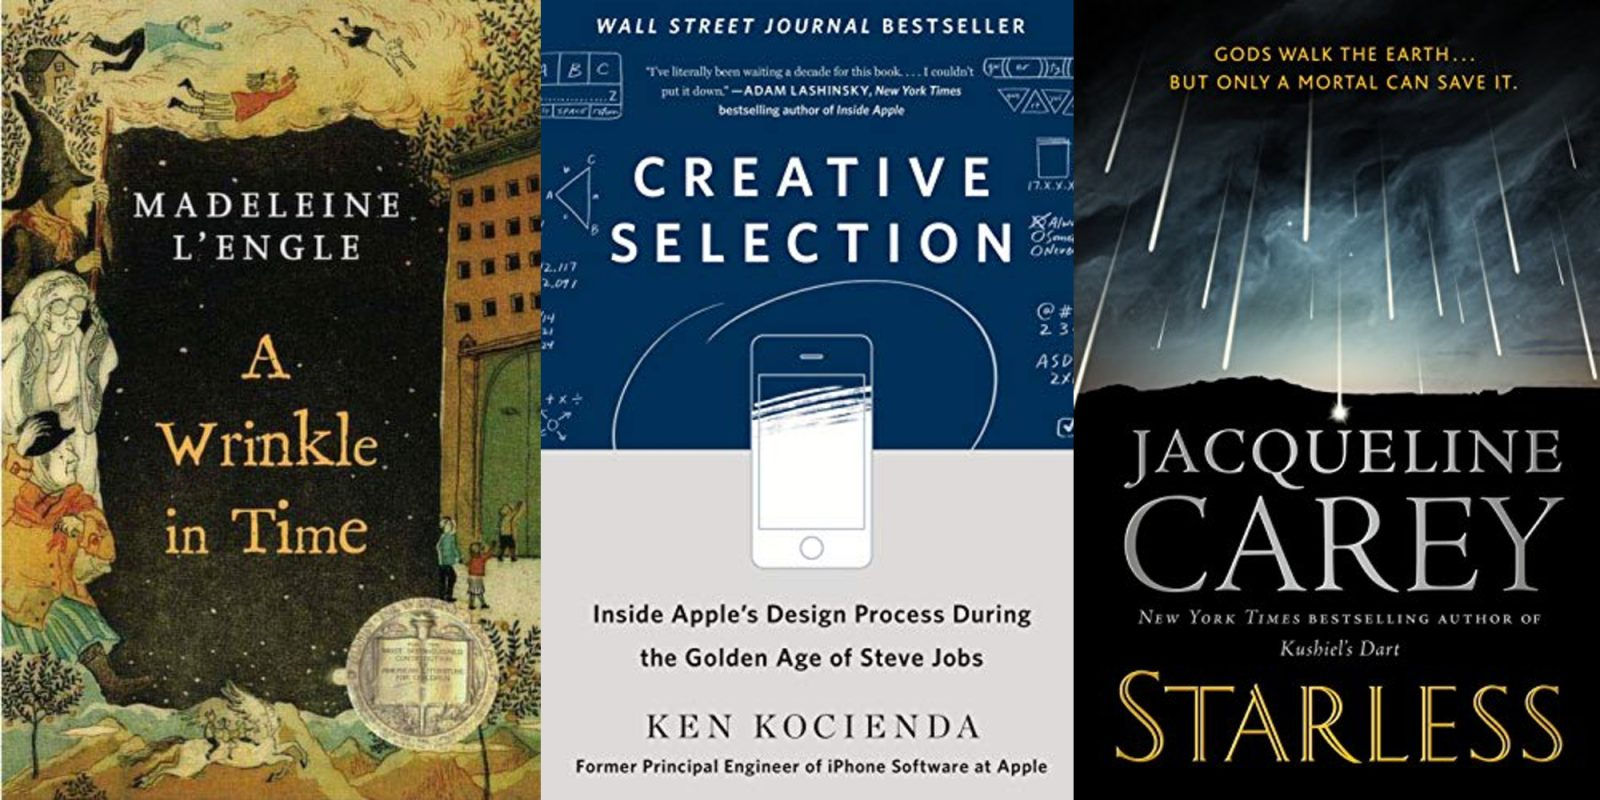 Amazon takes up to 80% off a selection of top Kindle eBook titles